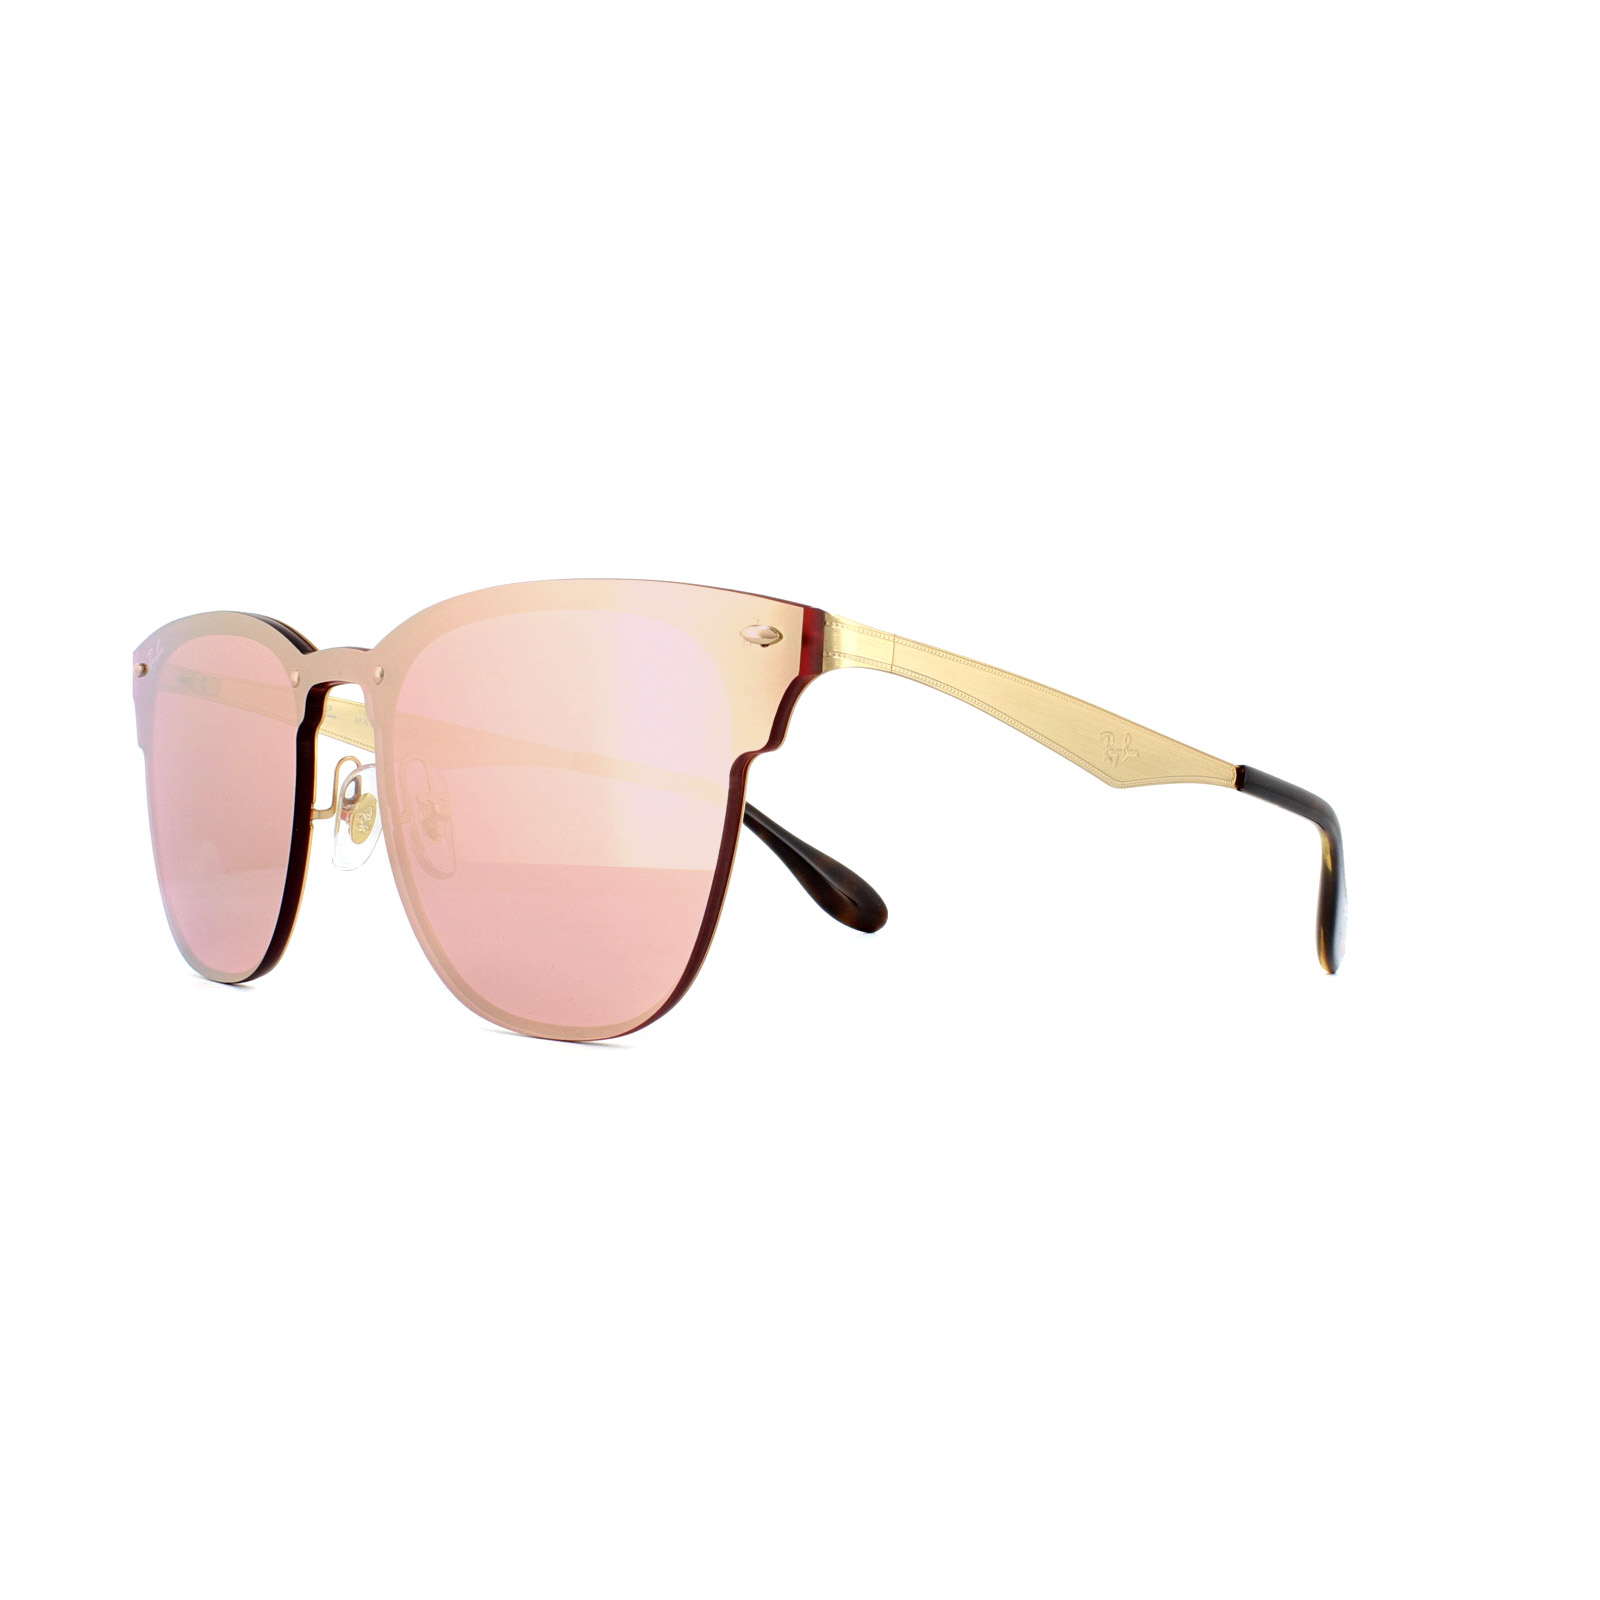 5ba7578855 Sentinel Ray-Ban Sunglasses Blaze Clubmaster 3576N 043 E4 Gold Pink Mirror